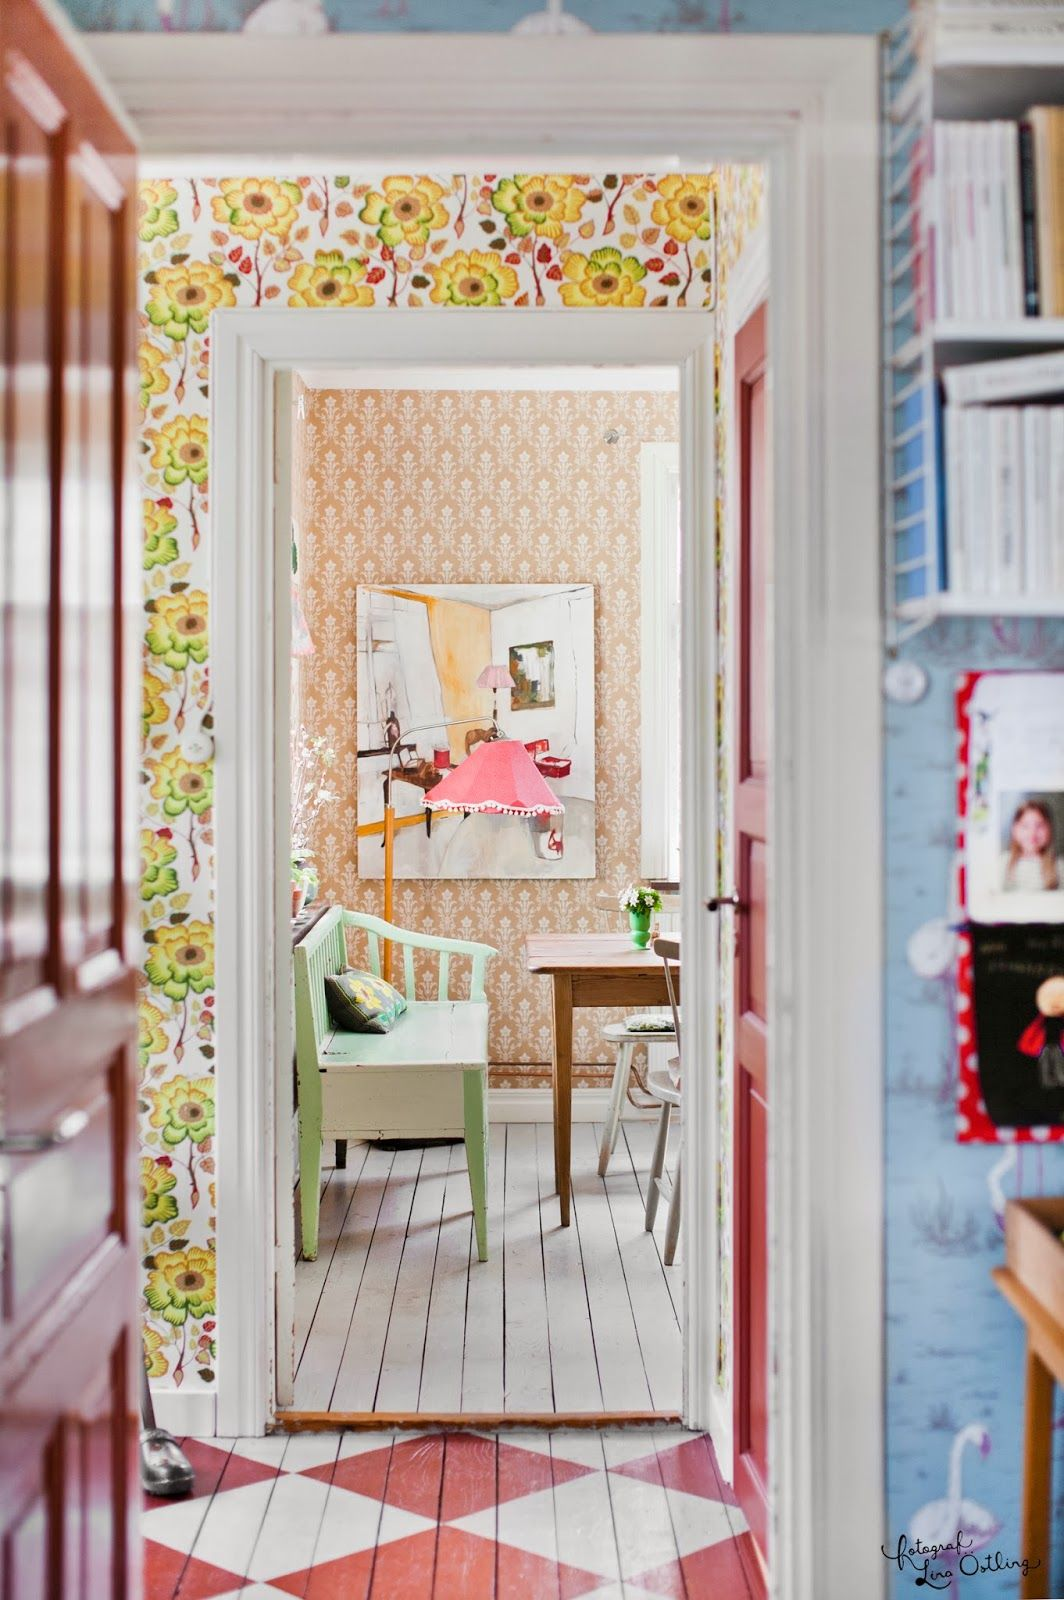 Pink hallway wallpaper  Pin by Caitlin Webb on   Pinterest  Vintage Interiors and